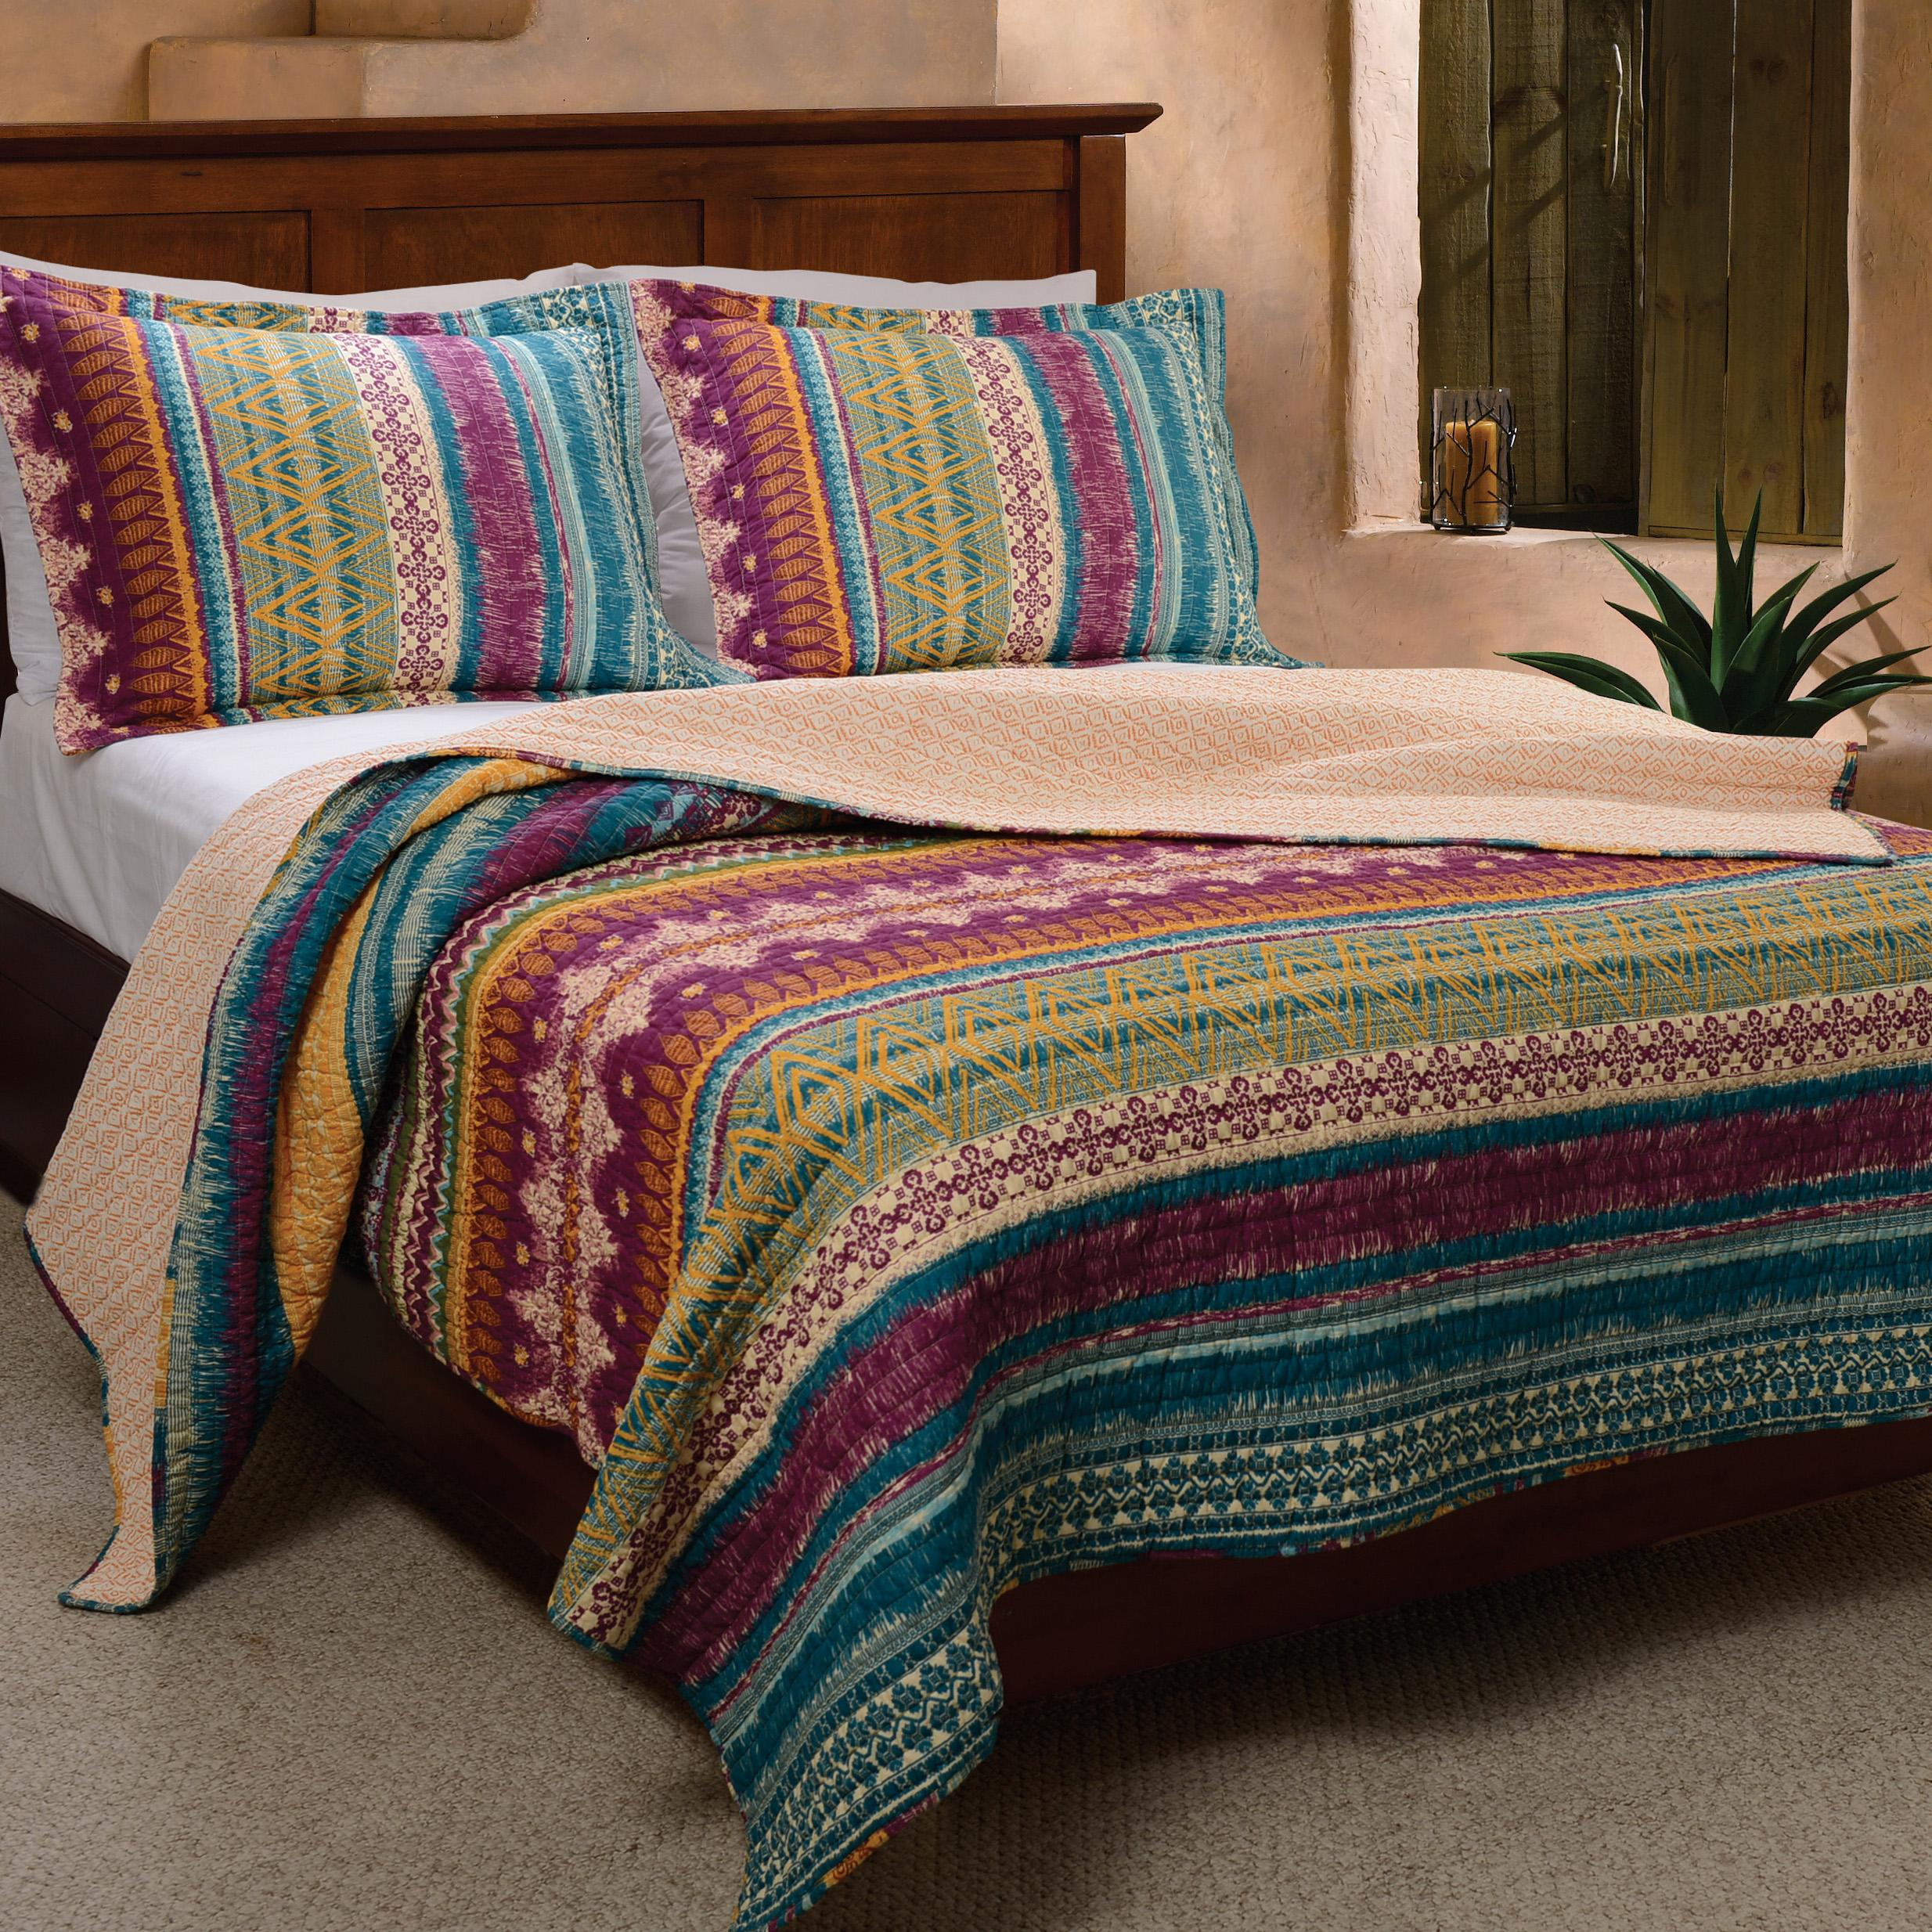 Greenland home esprit spice quilt set king for Quilted kitchen set